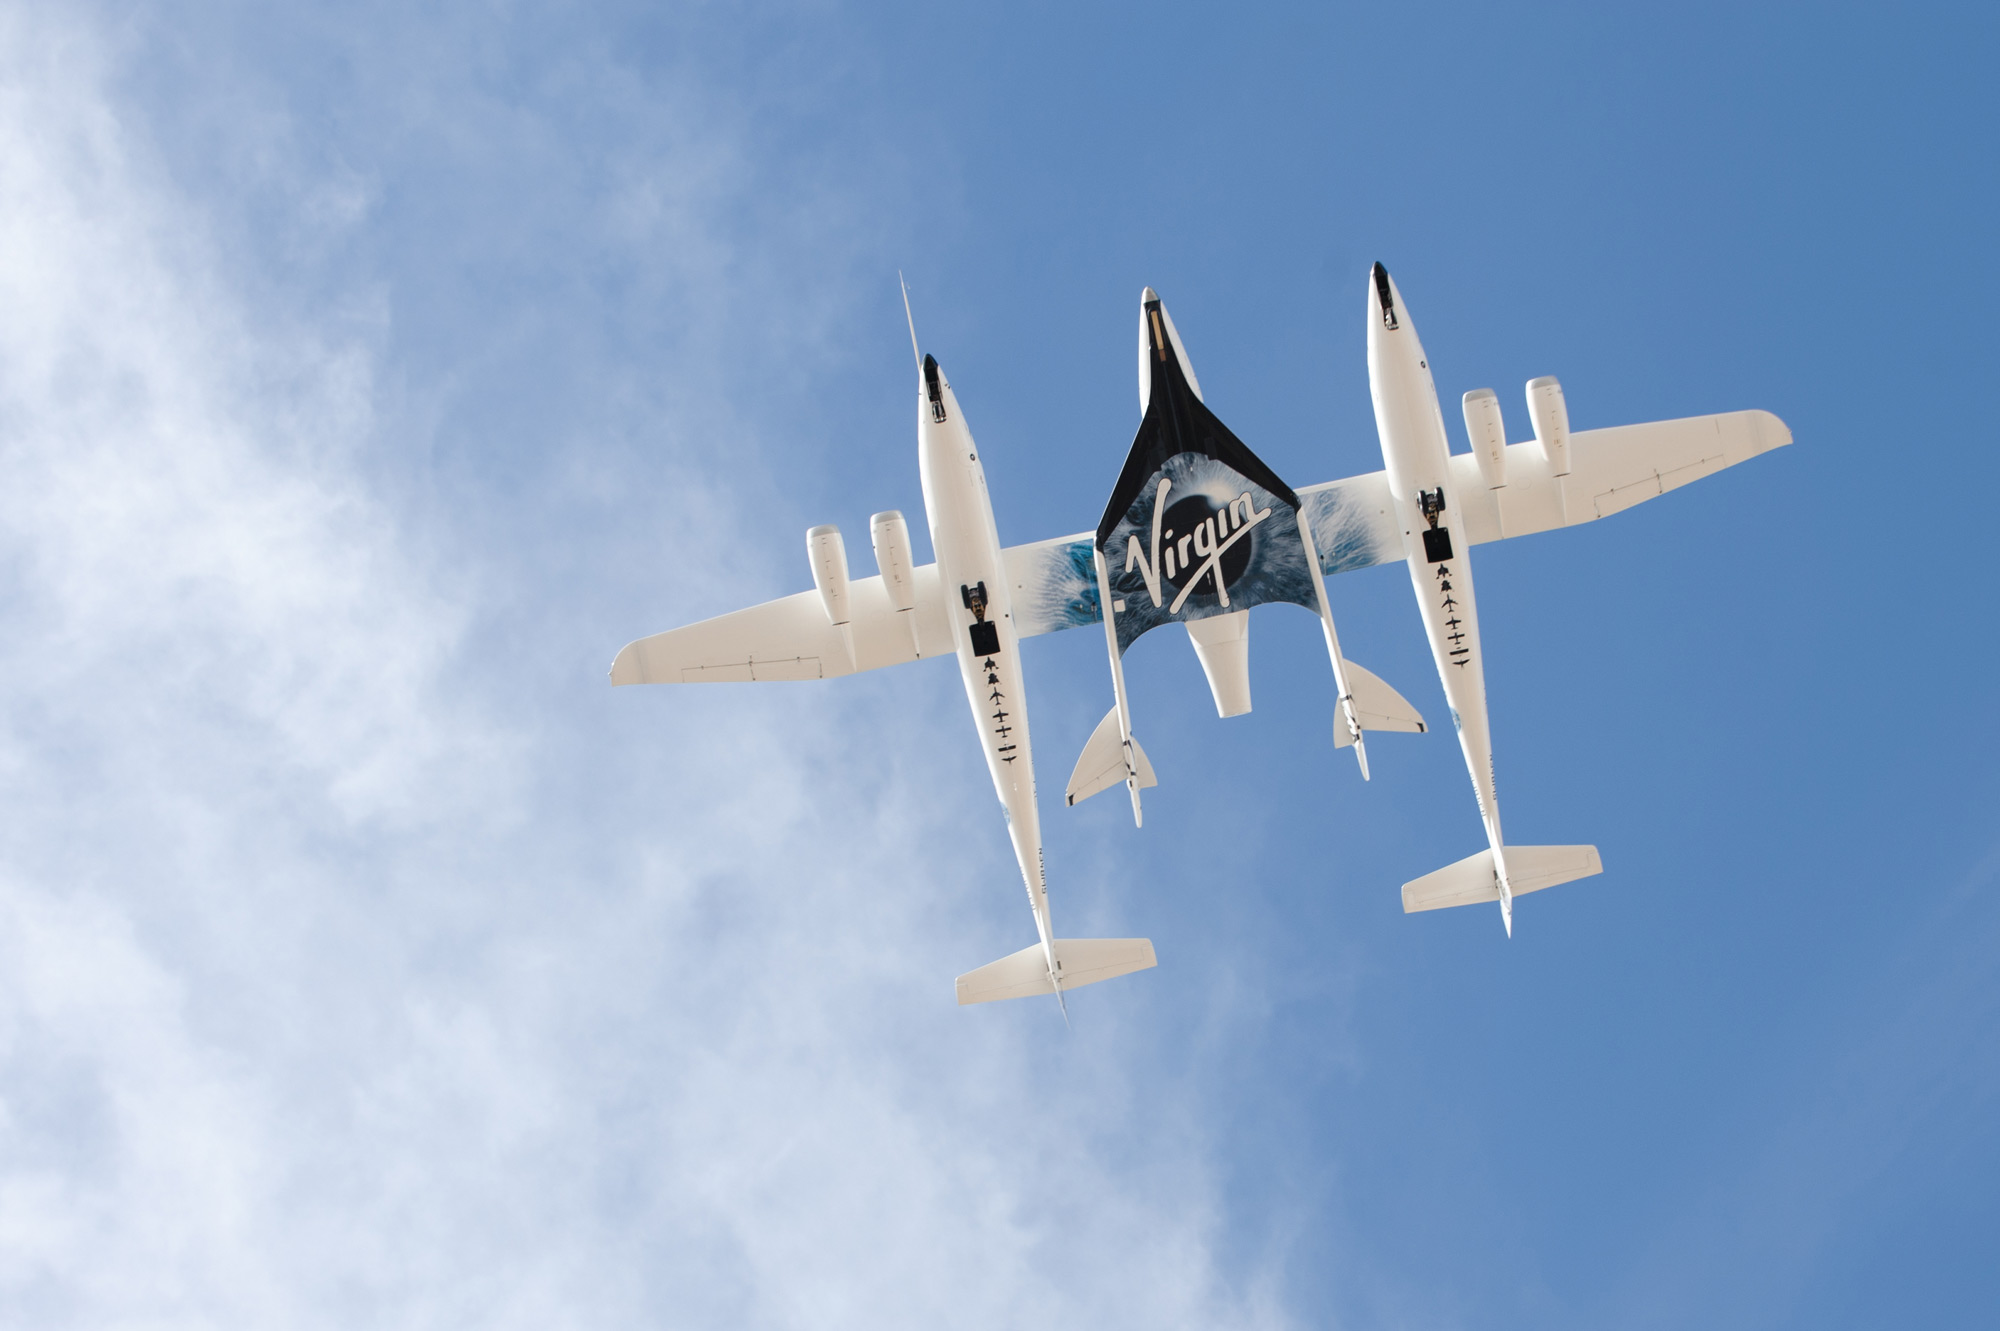 WhiteKnightTwo and VSS Enterprise Fly over the Spaceport